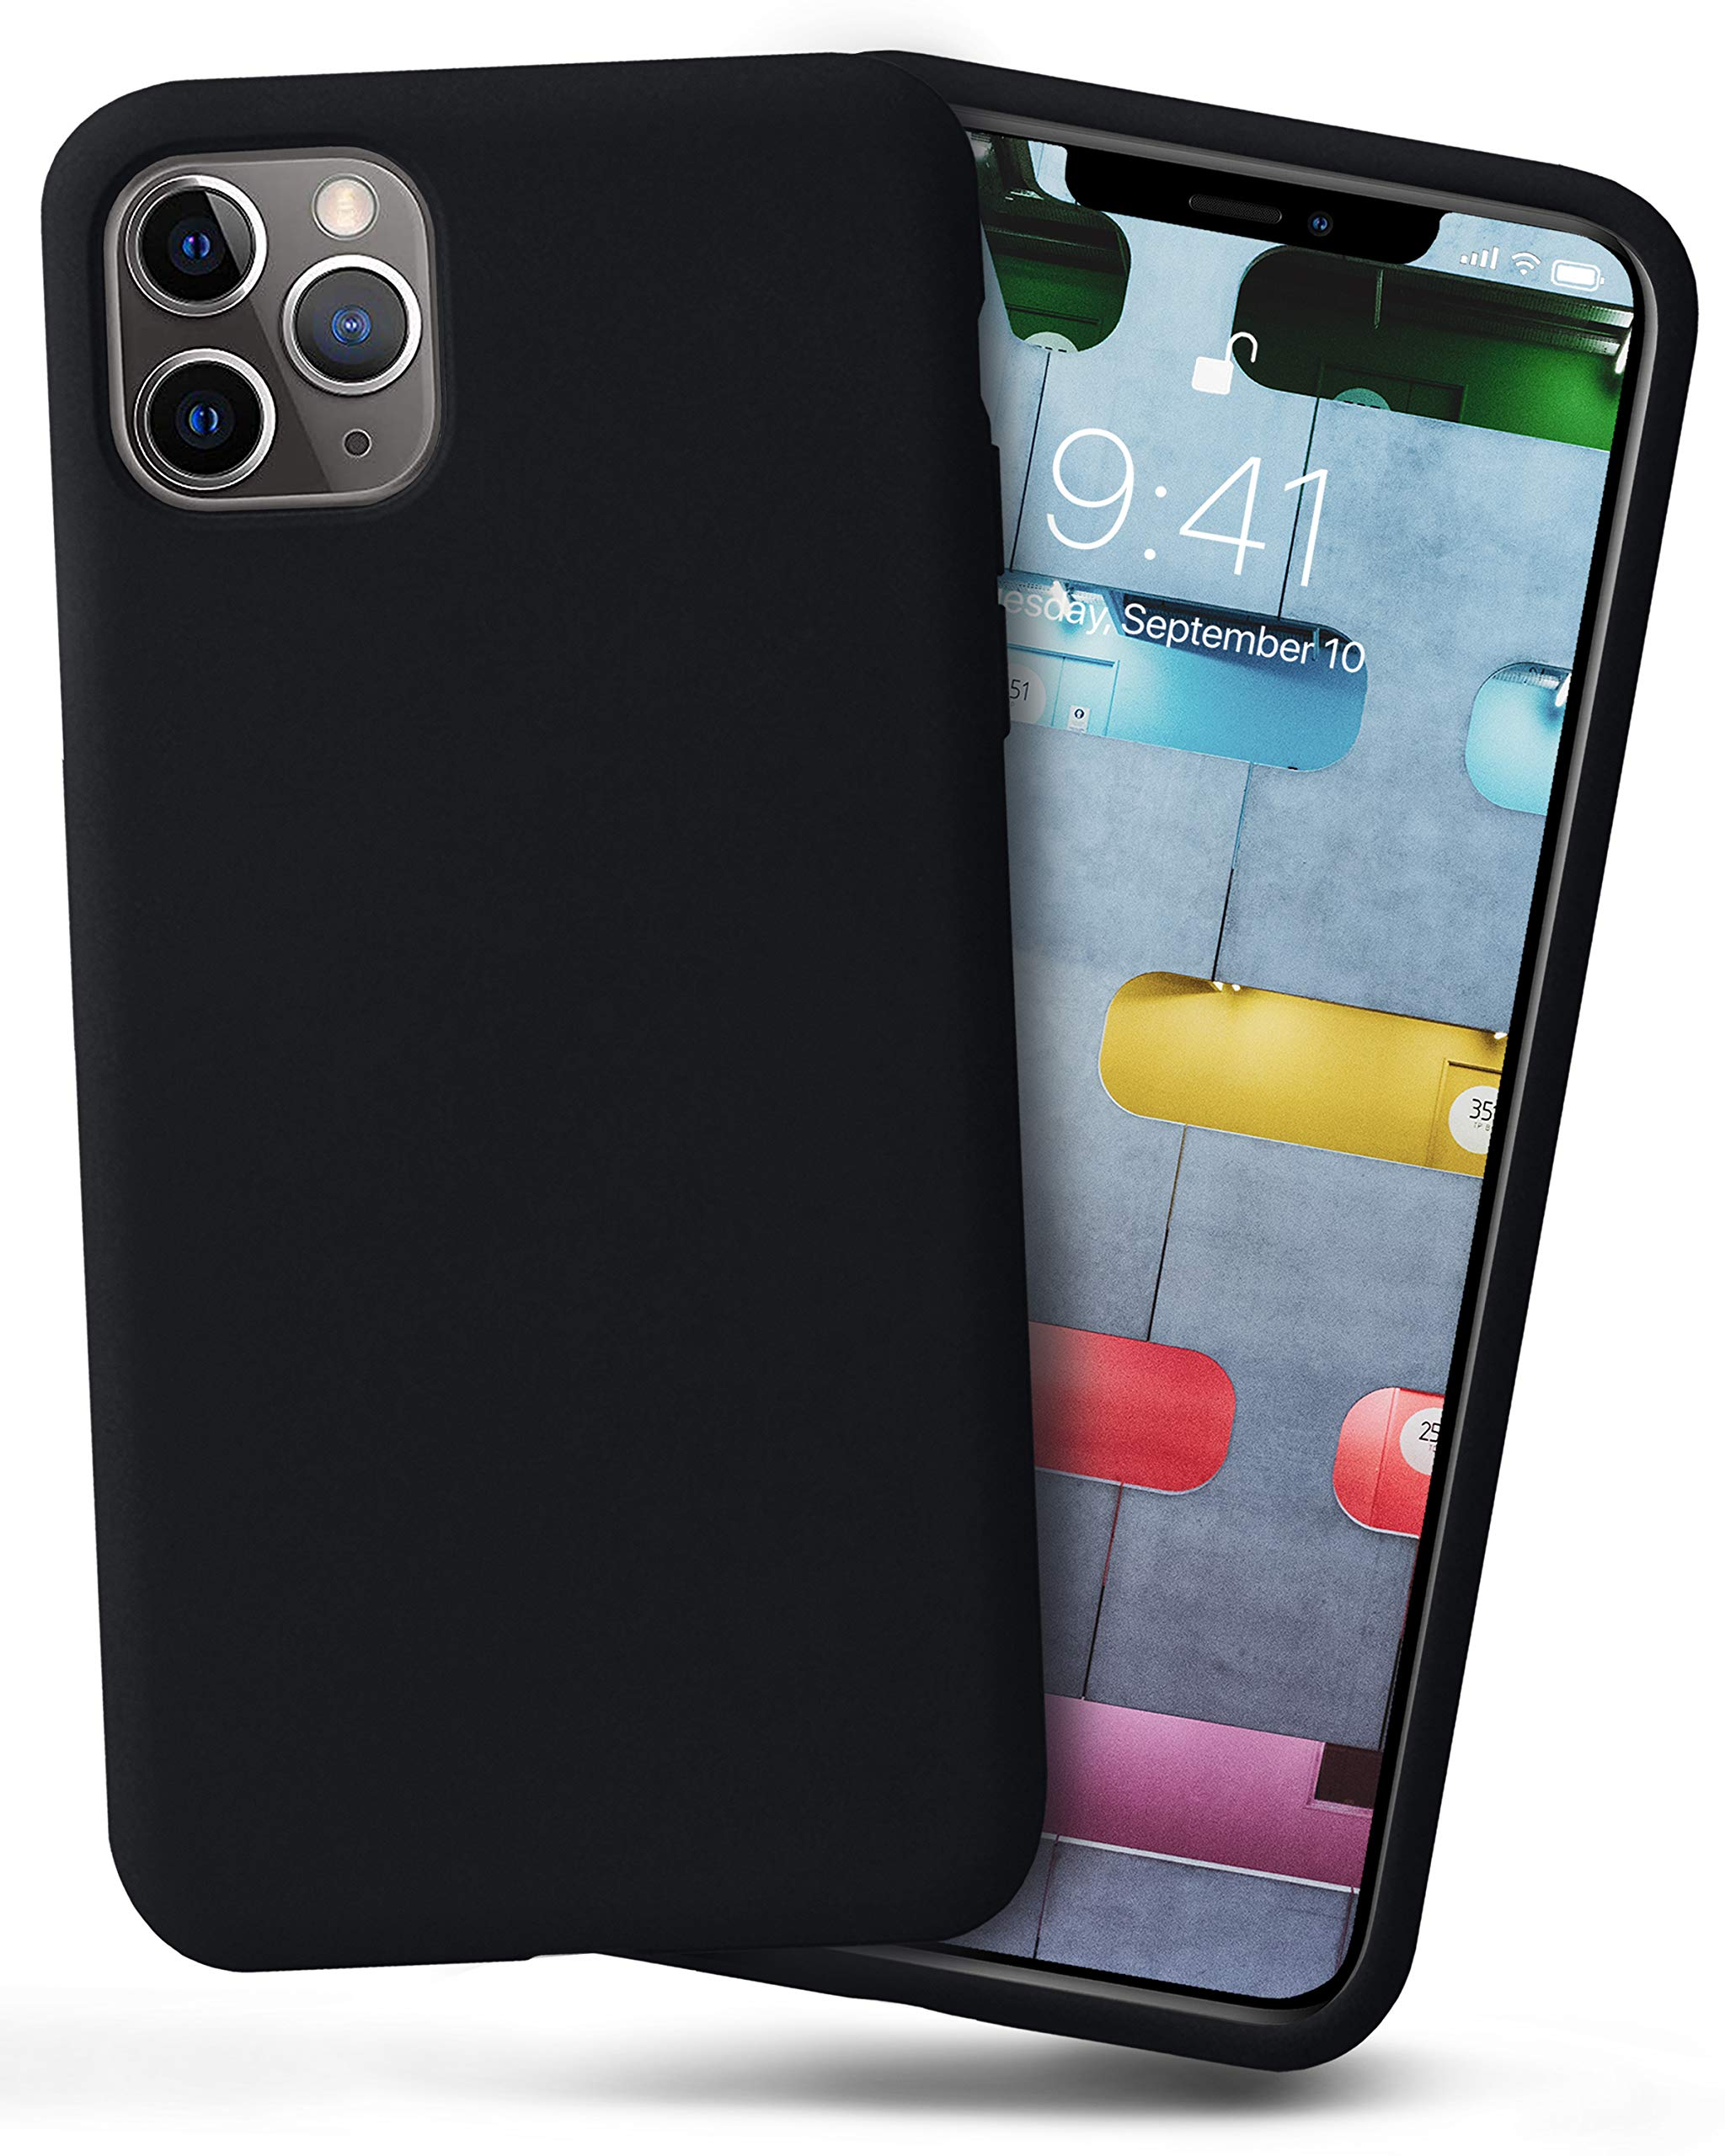 OCOMMO iPhone 11 Pro MAX Silicone Case, Full Body Shockproof Protective Liquid Silicone iPhone 11 Pro MAX Case with Soft Microfiber Lining, Wireless Charging Pad Compatible, Black